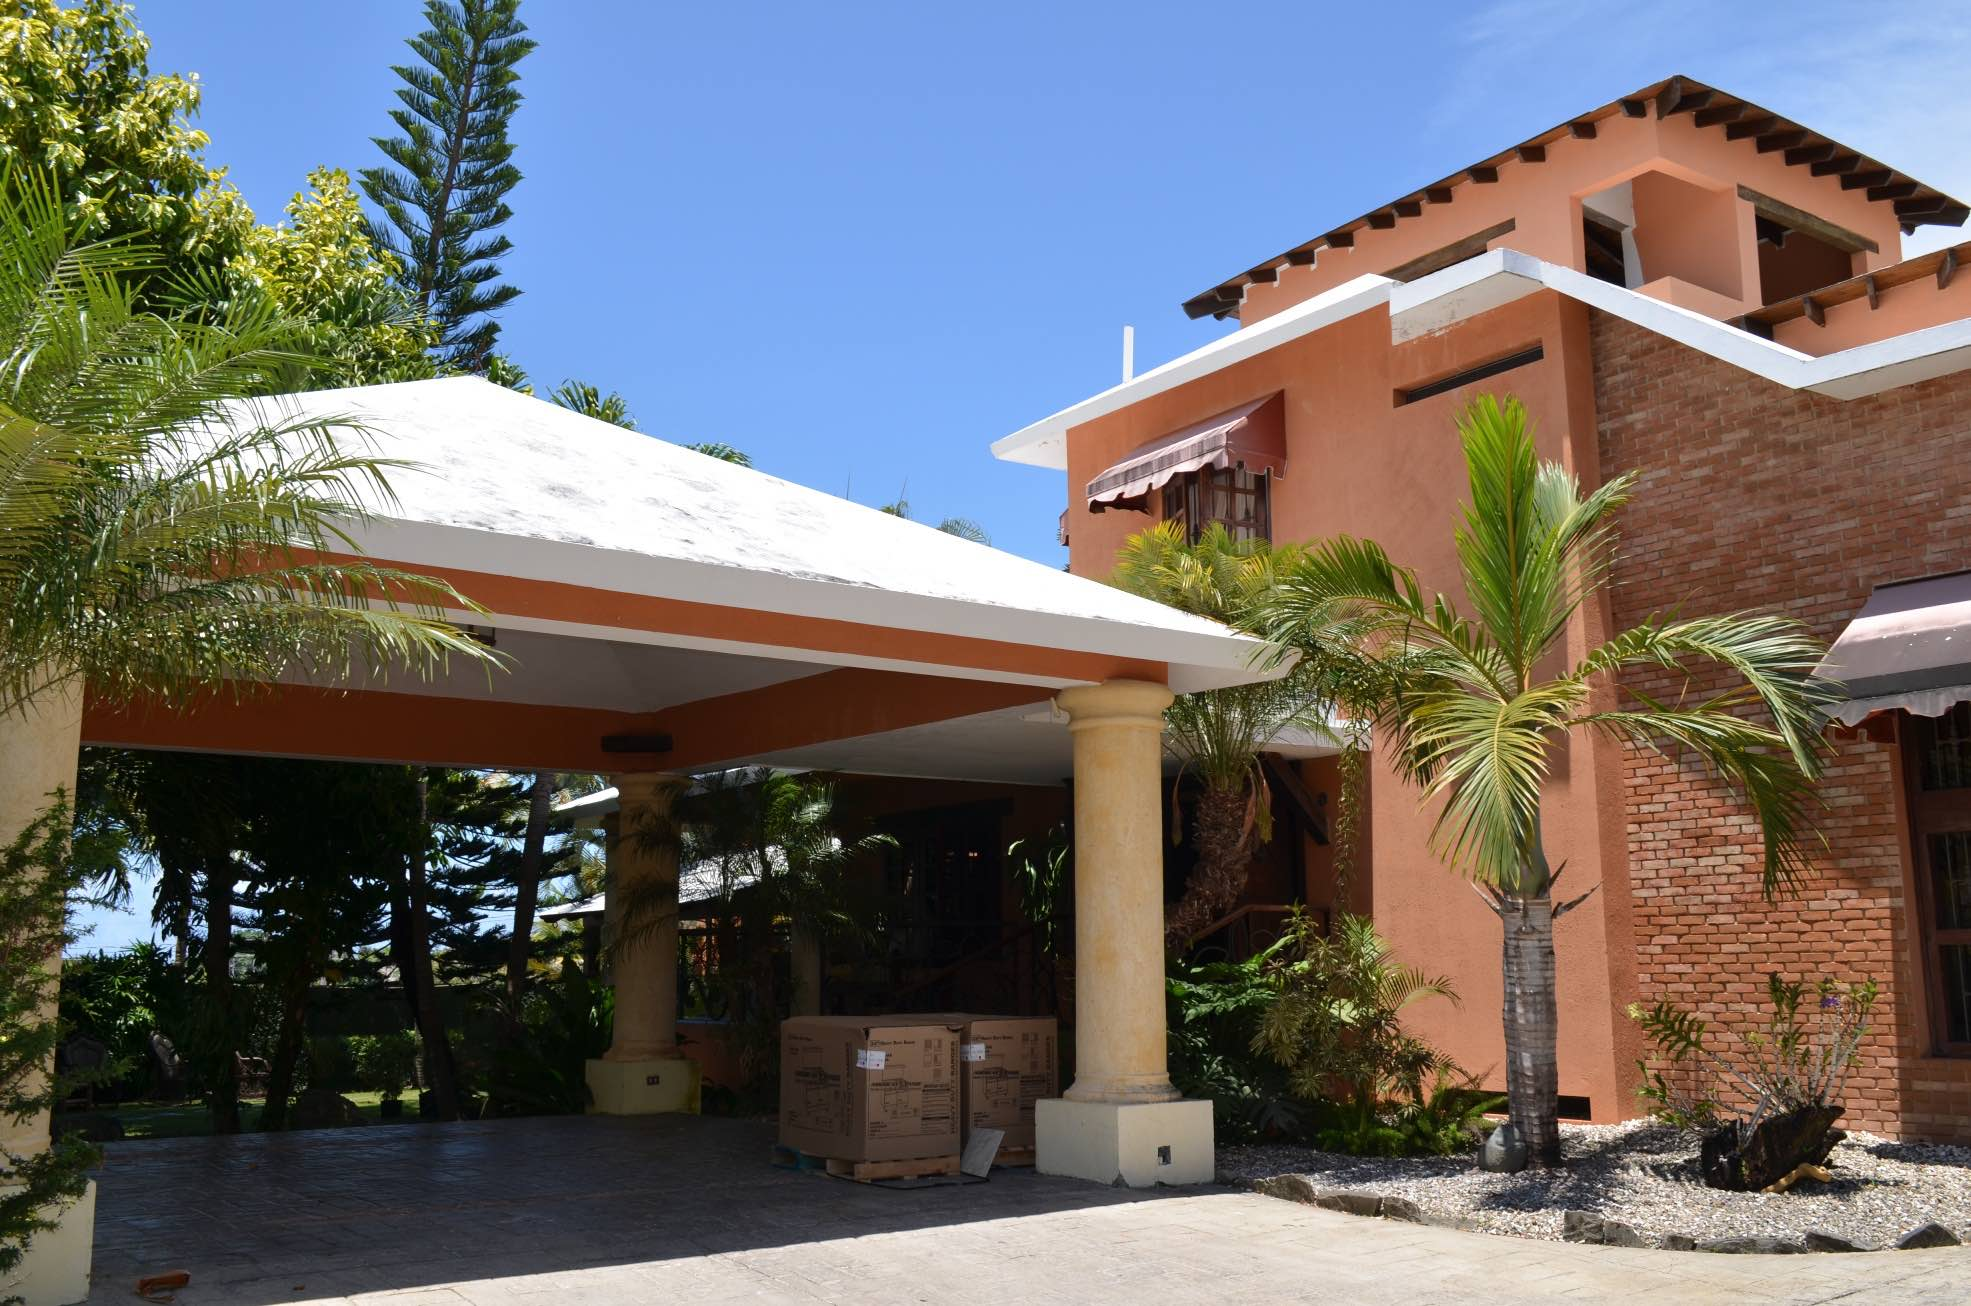 Home in Puerto Plata – Spanish Revival Architecture